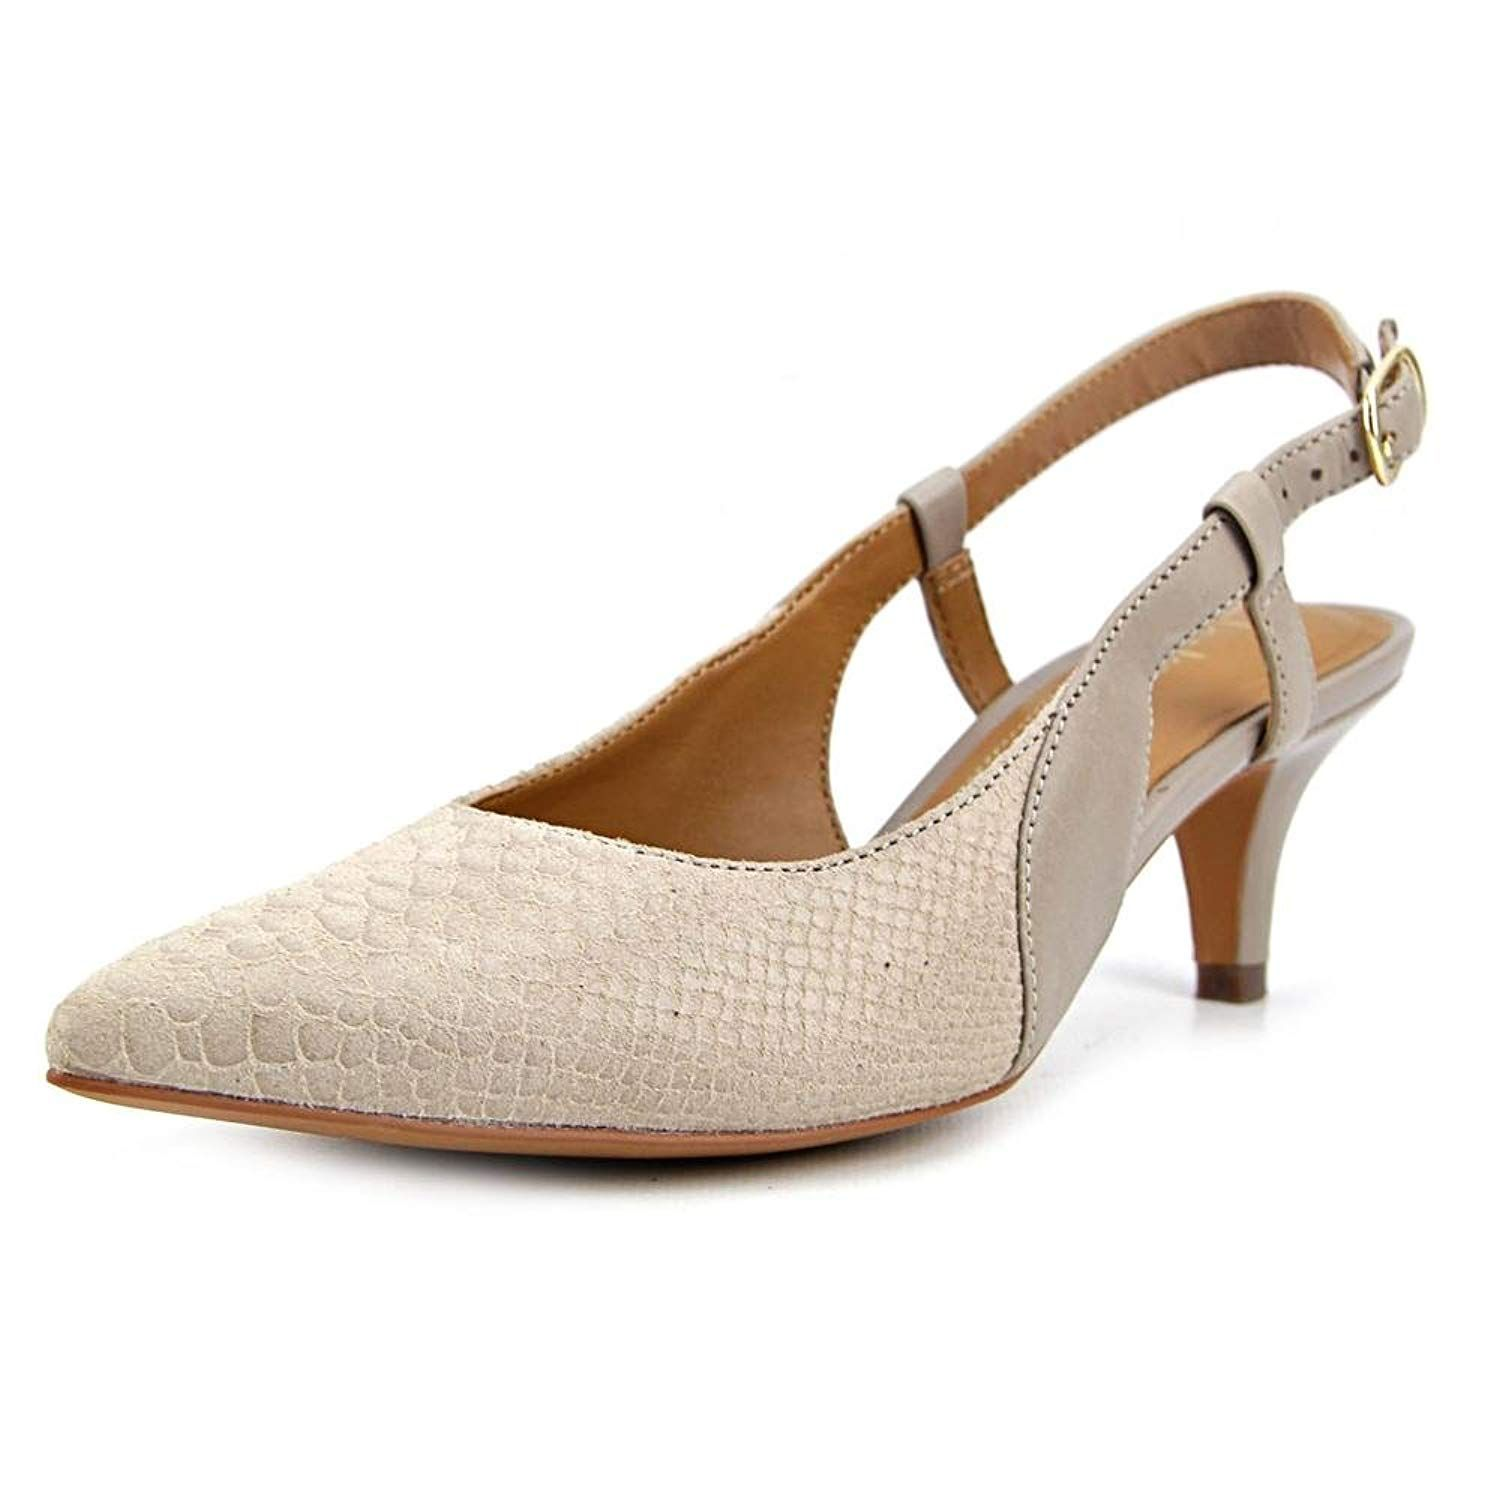 Clarks Womens Sage Ursa Pointed Toe Slingback D Orsay Pumps From Work To Weekend Gatherings These Kitten Heel Pumps By C Womens Shoes Pumps Girls Shoes Heels